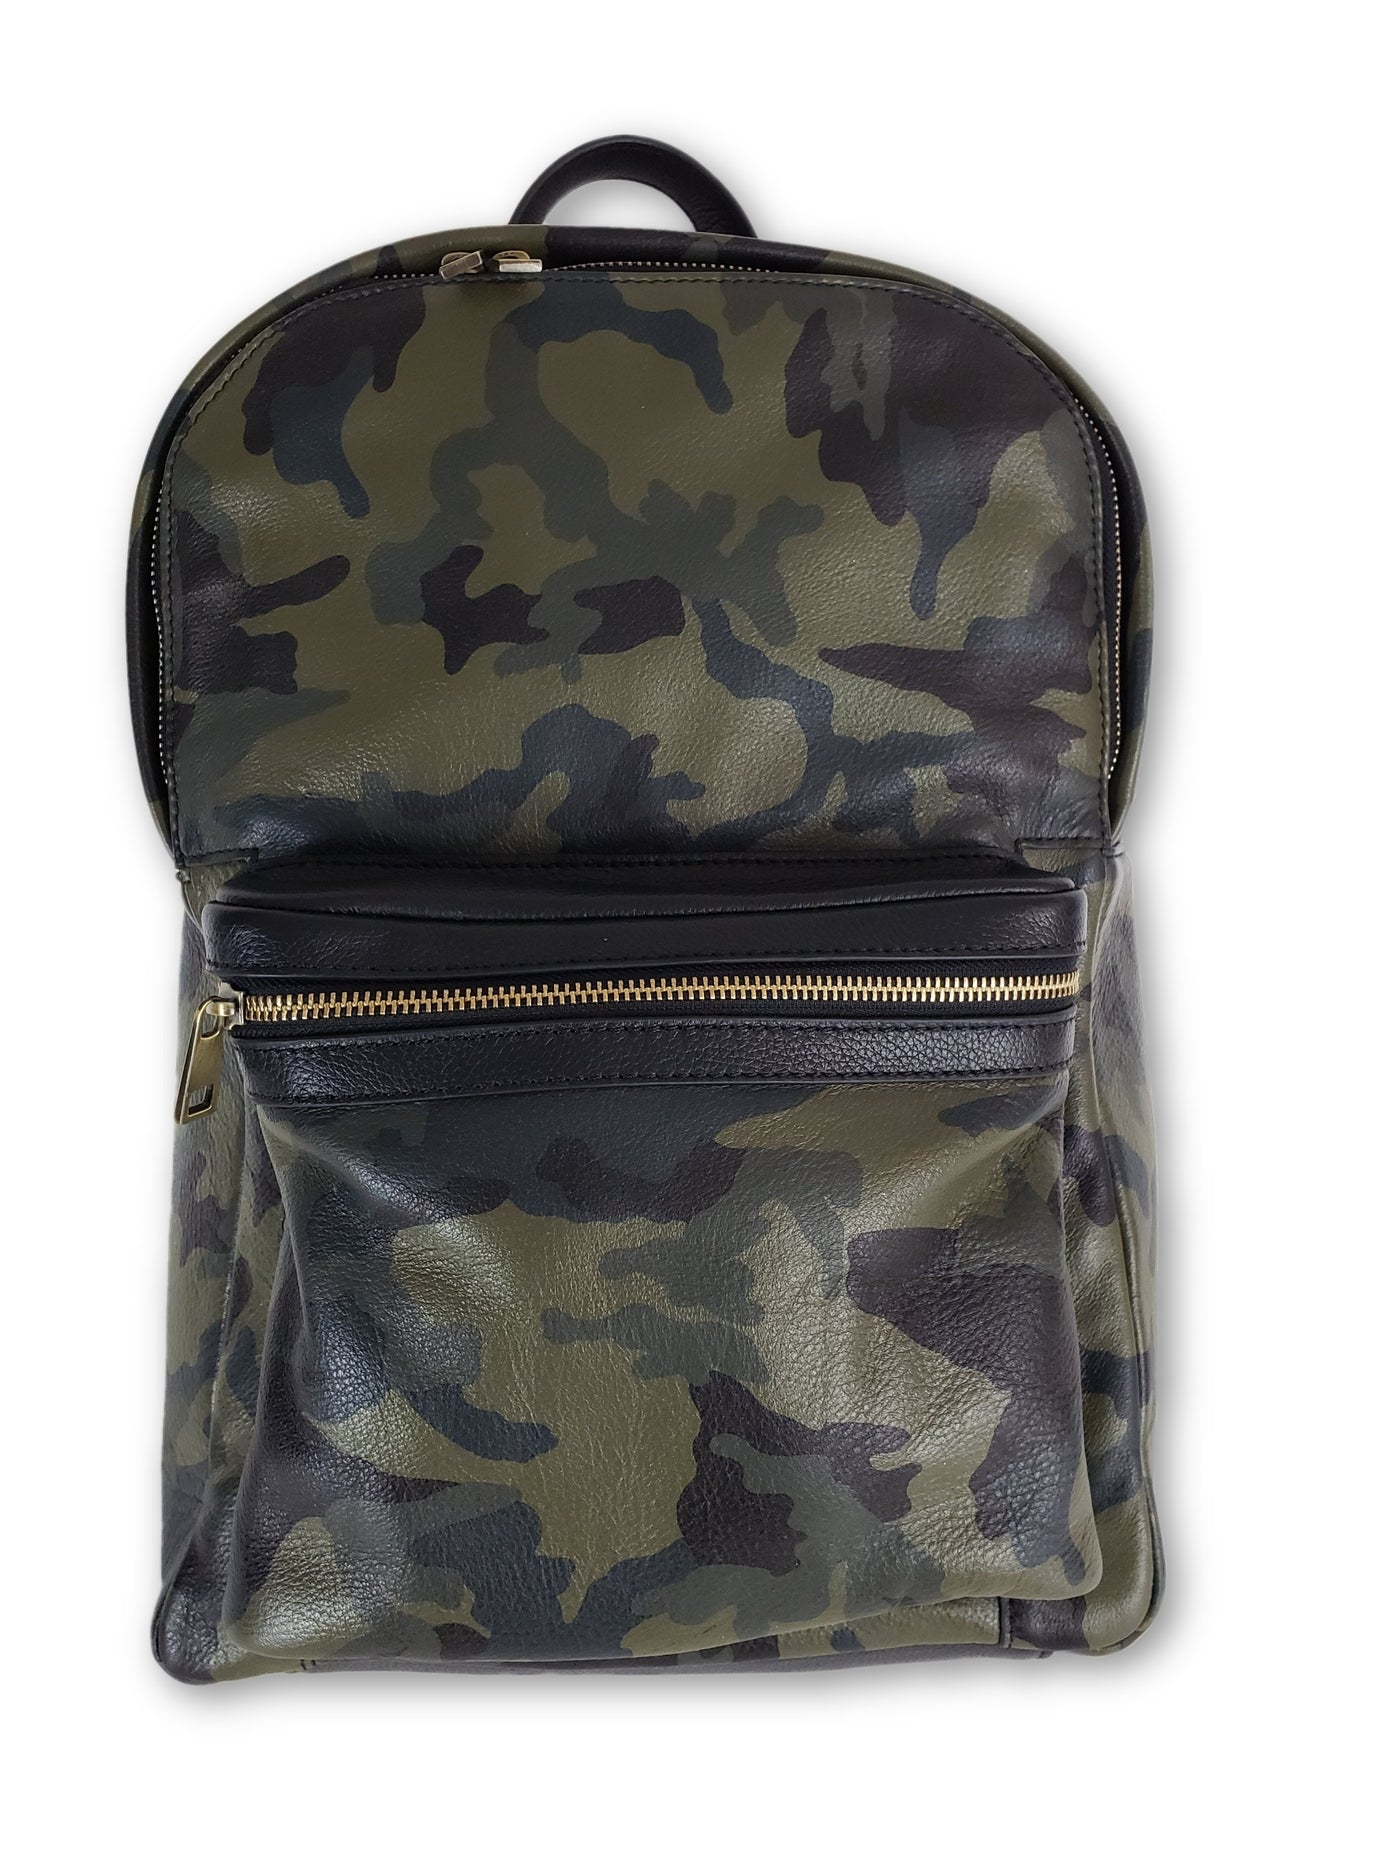 Green Camo Leather Backpack - FH Wadsworth